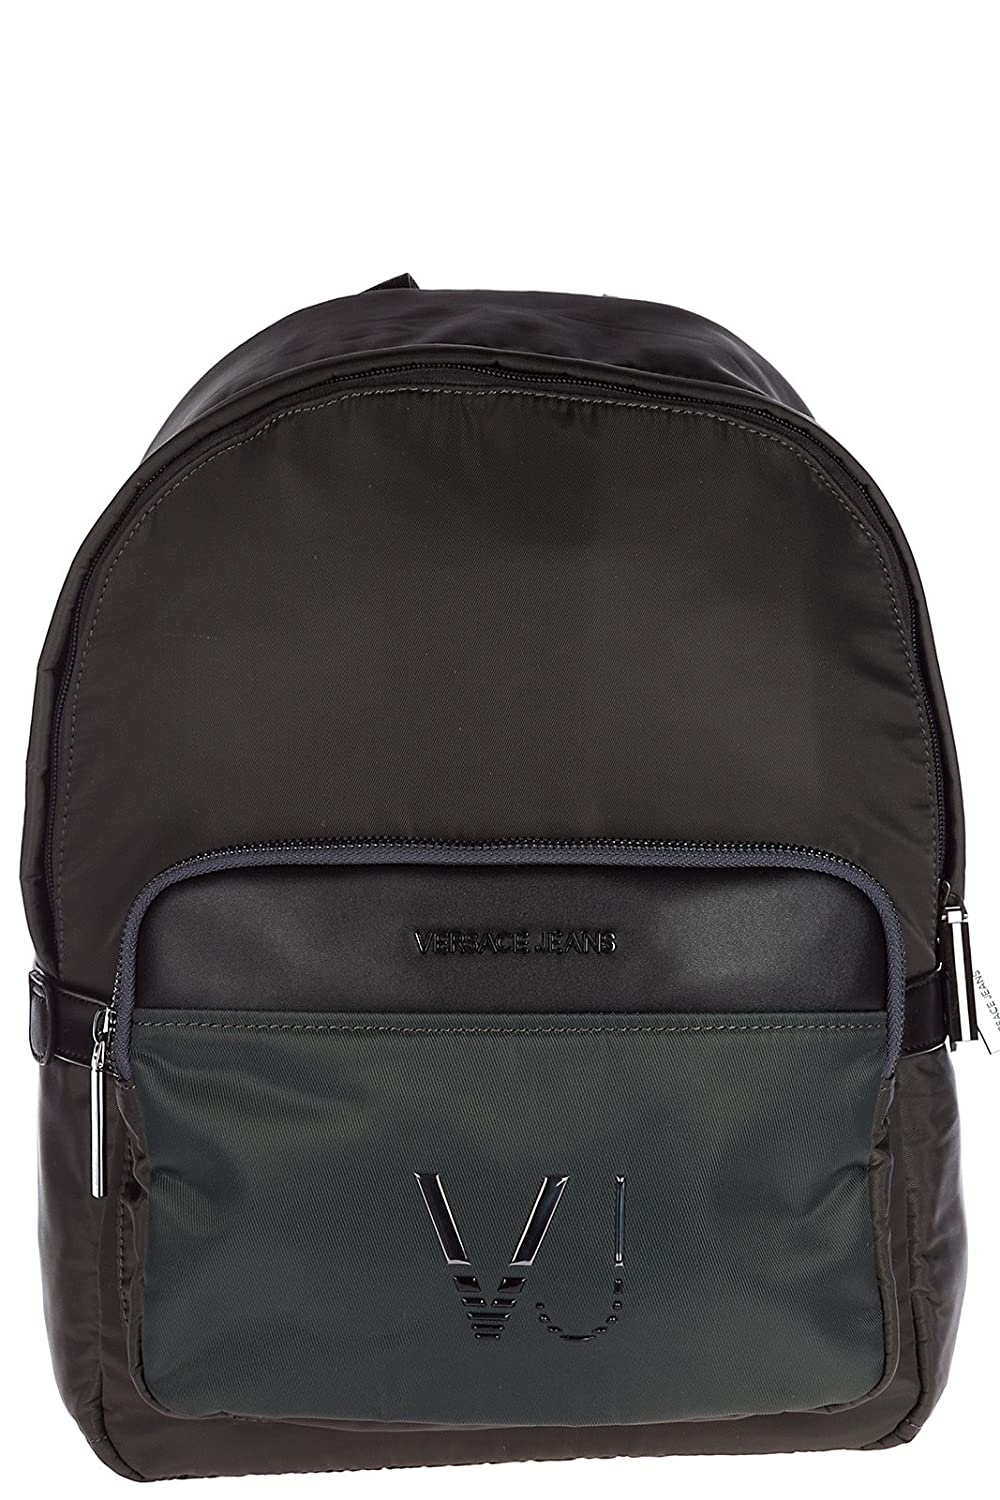 d82ea0eaacd Versace Jeans men s Nylon rucksack backpack travel logo vj green  Amazon.co. uk  Shoes   Bags